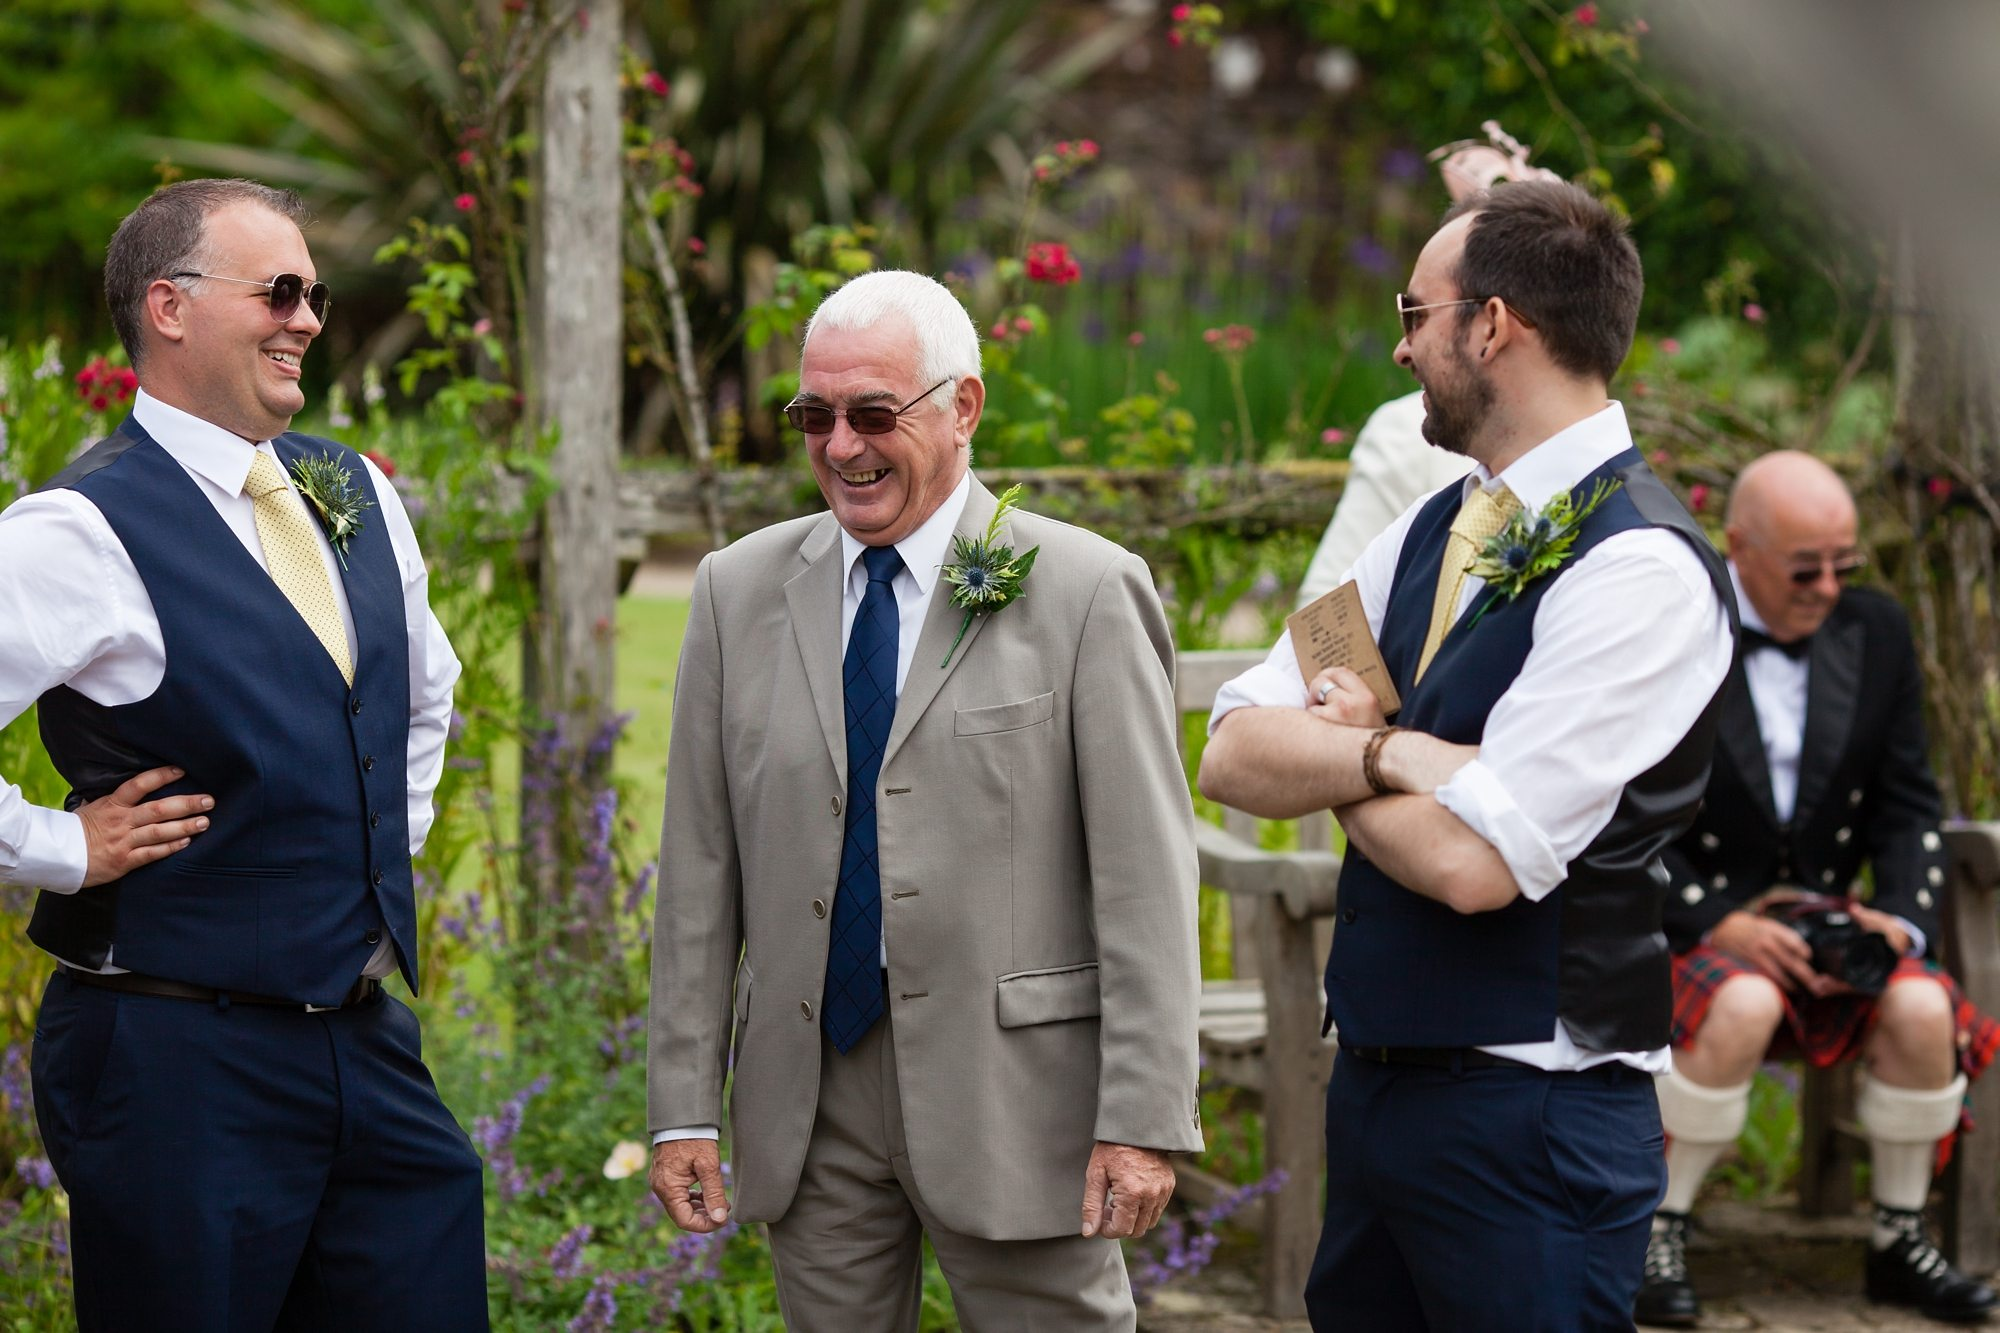 wedding guests wearing sunglasses with kilt and flowers